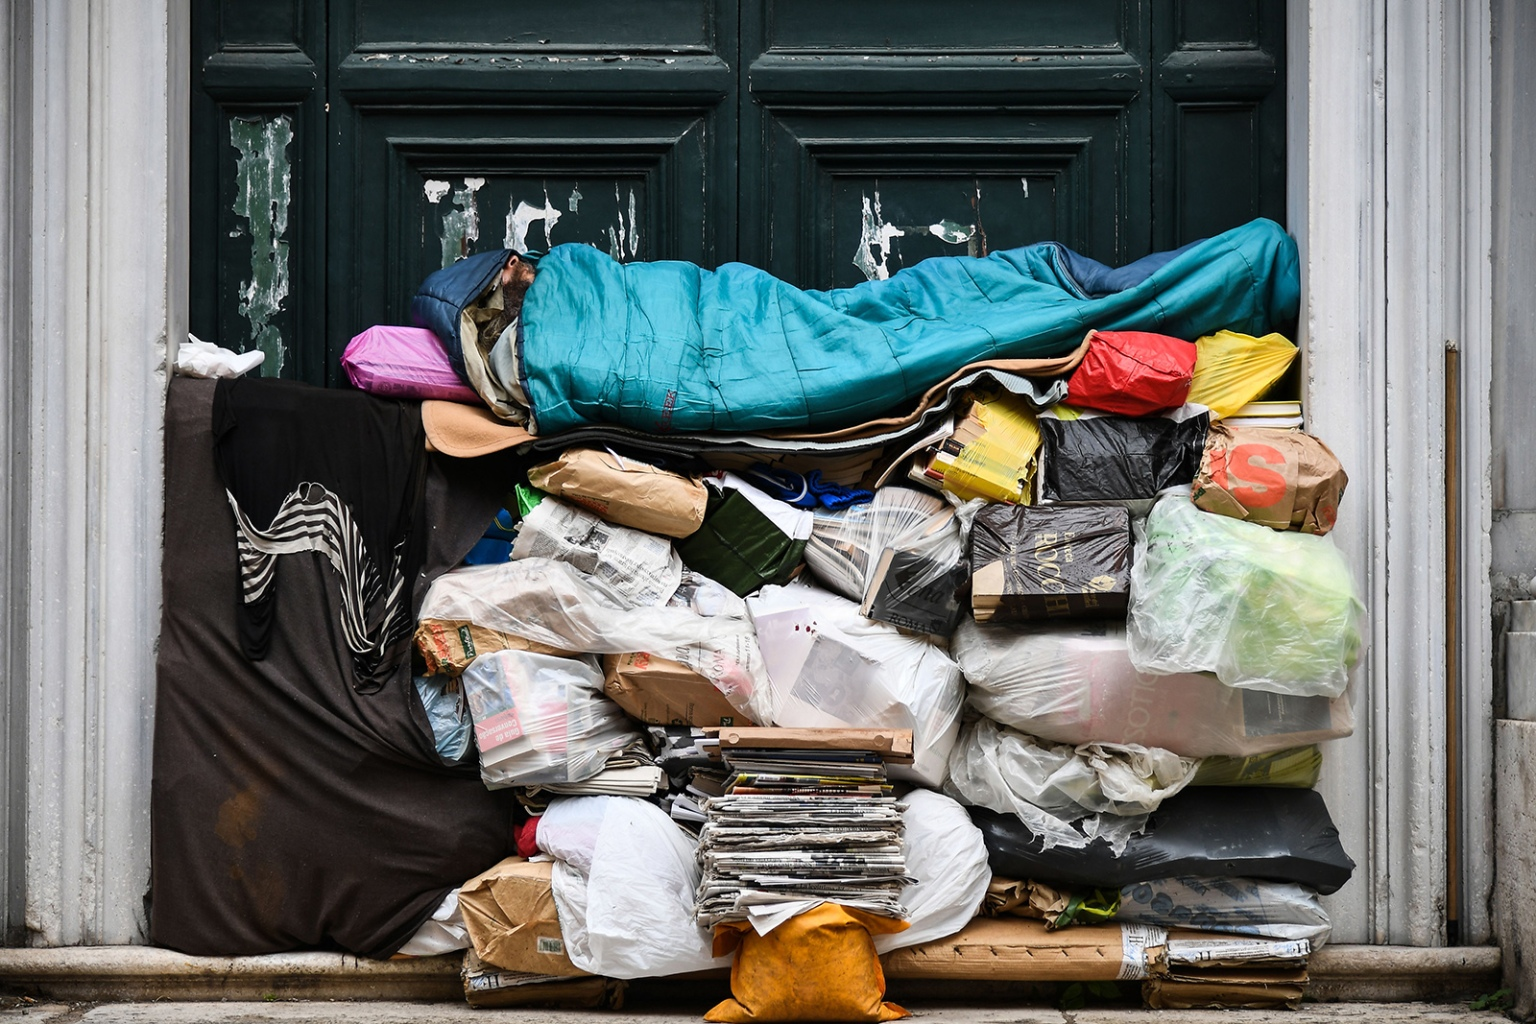 A homeless man sleeps on a pile of plastic bags and newspapers under a porch in Rome on April 7. VINCENZO PINTO/AFP/Getty Images